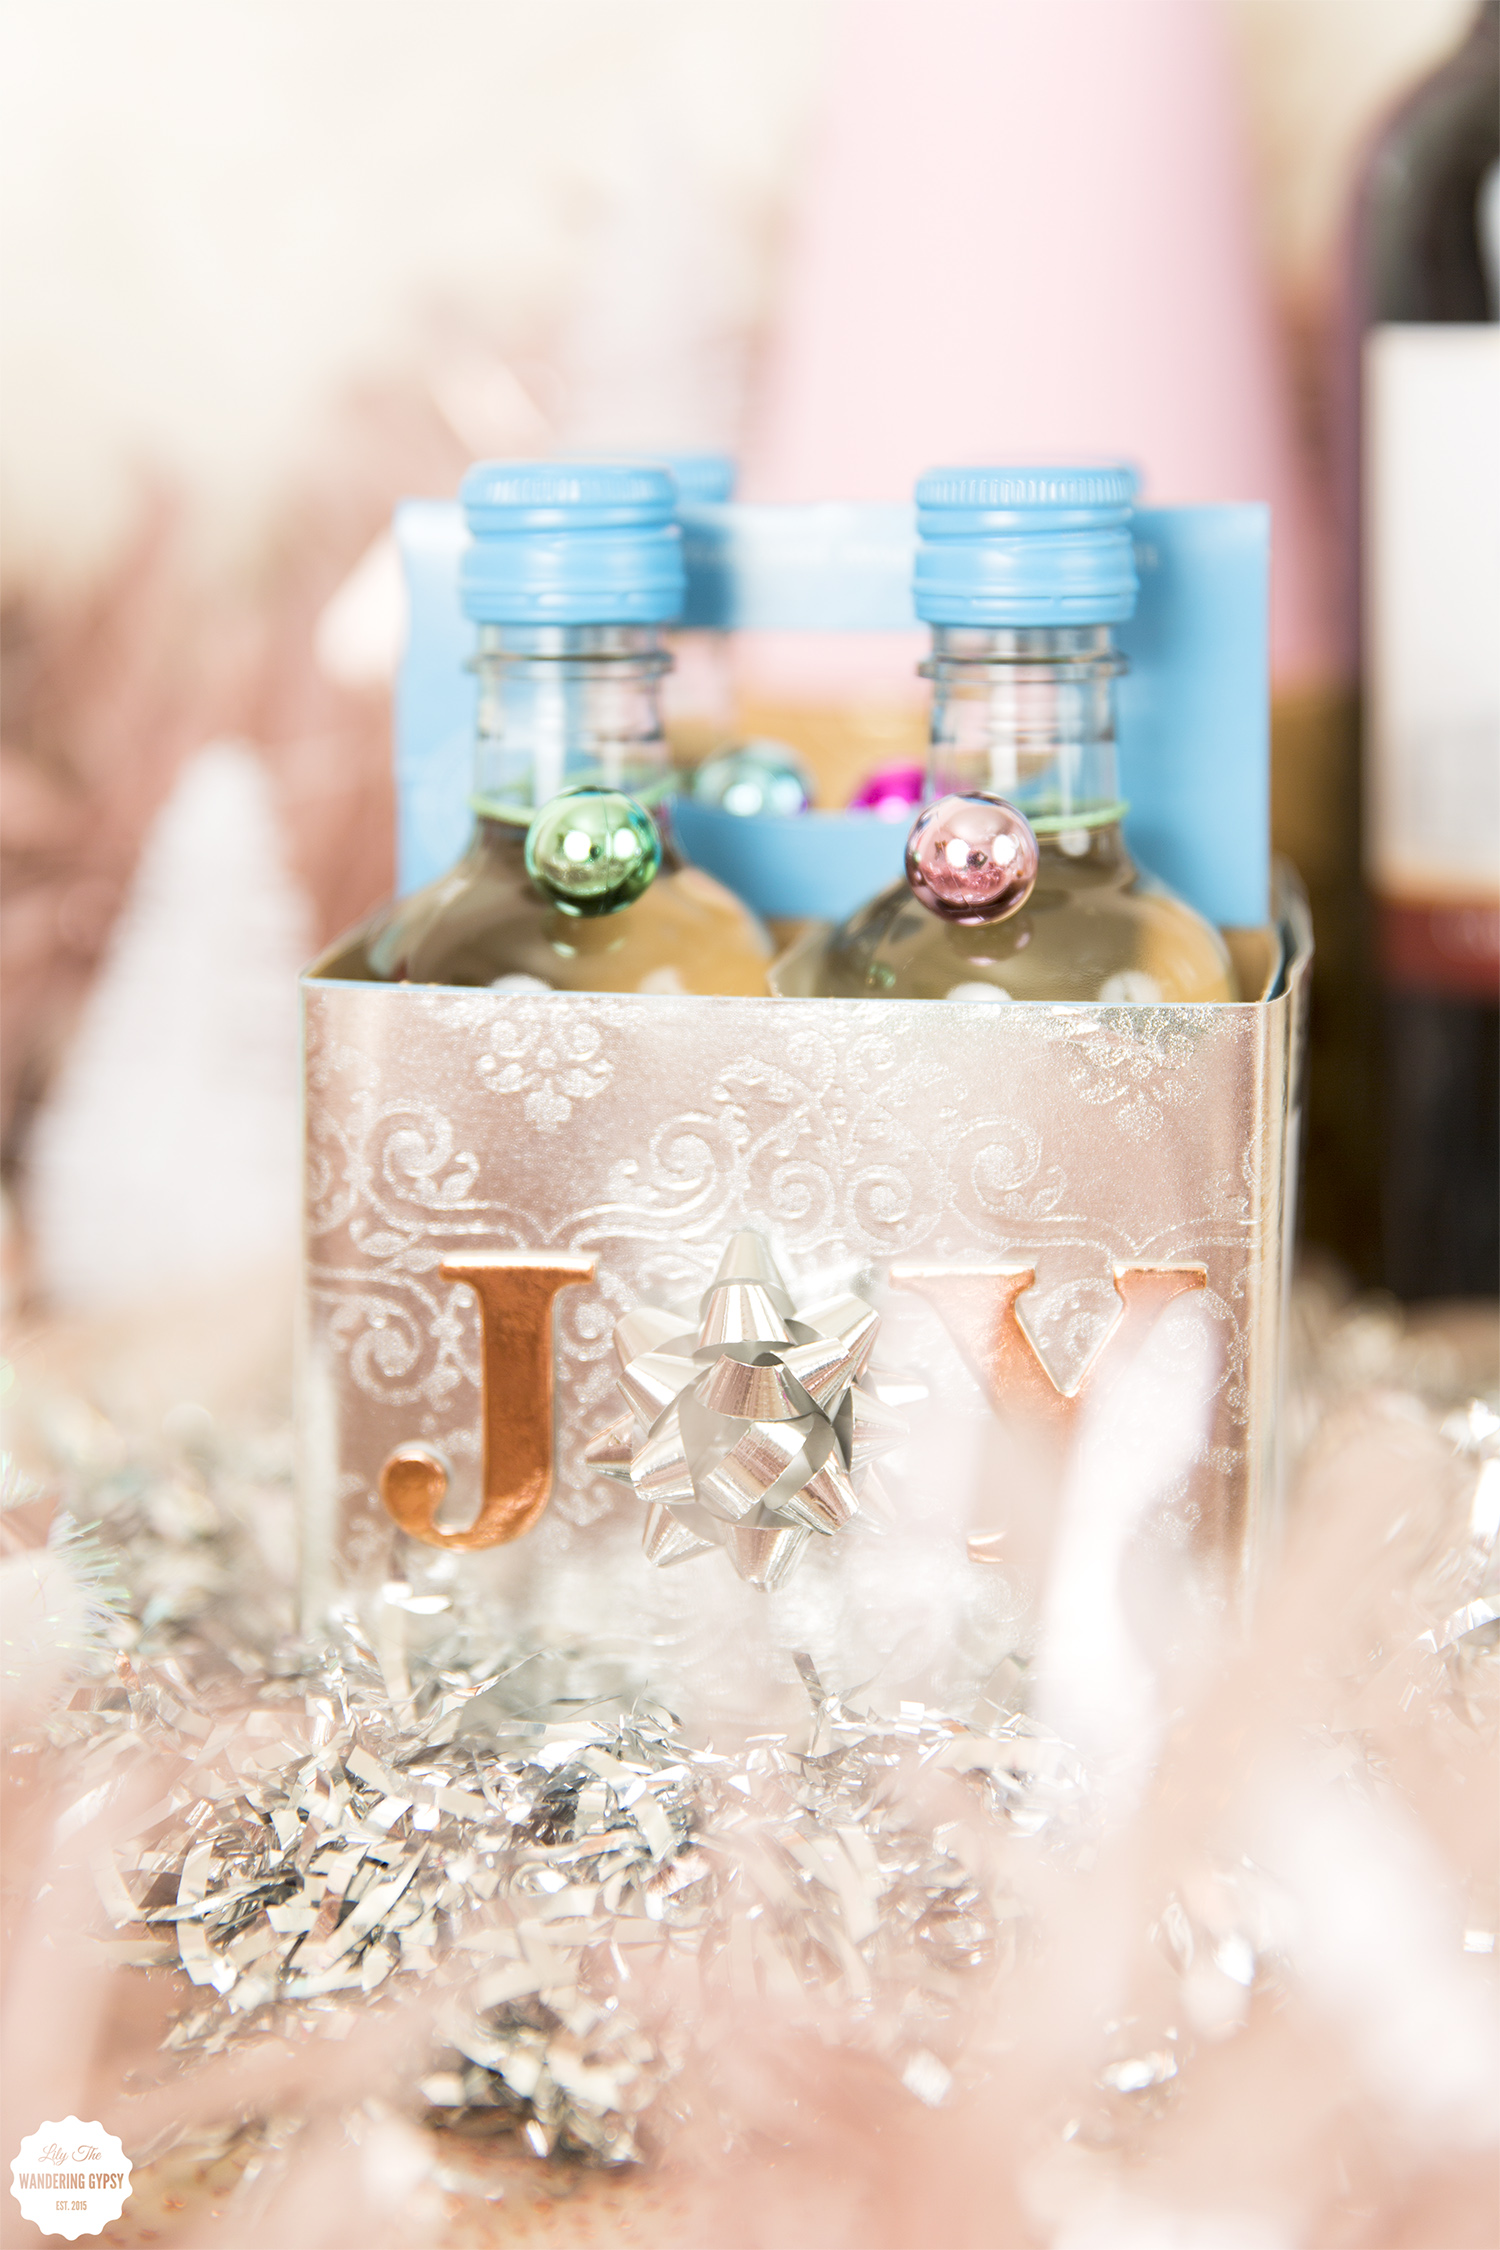 decorate wine bottles as gifts